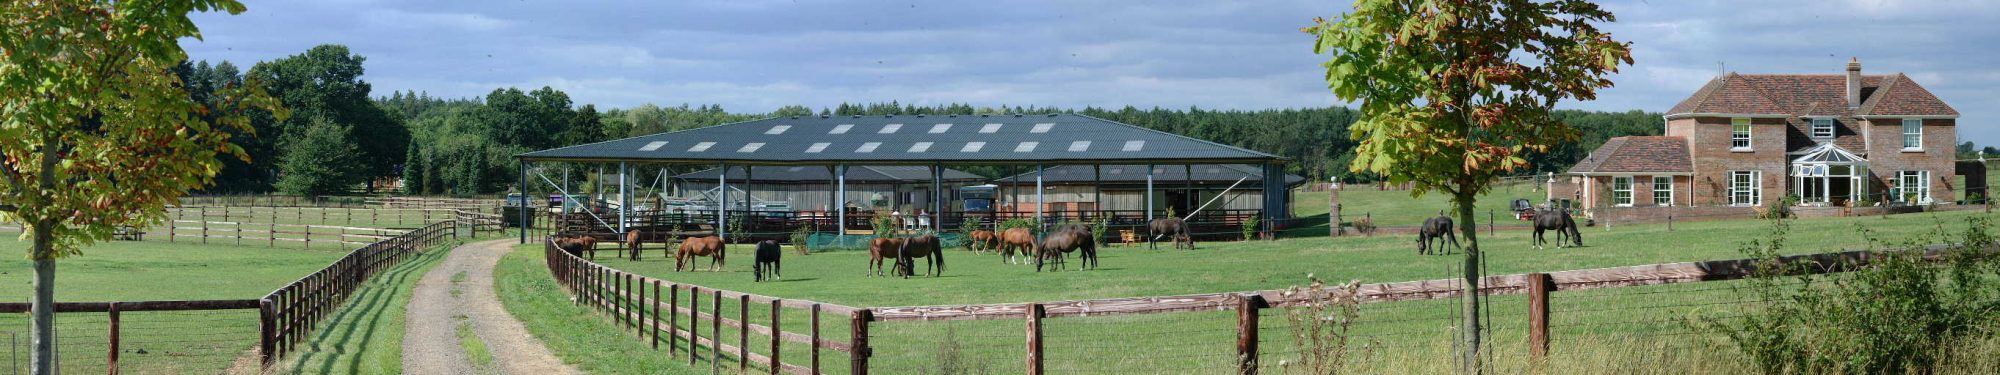 Livery at Holme Park Stud